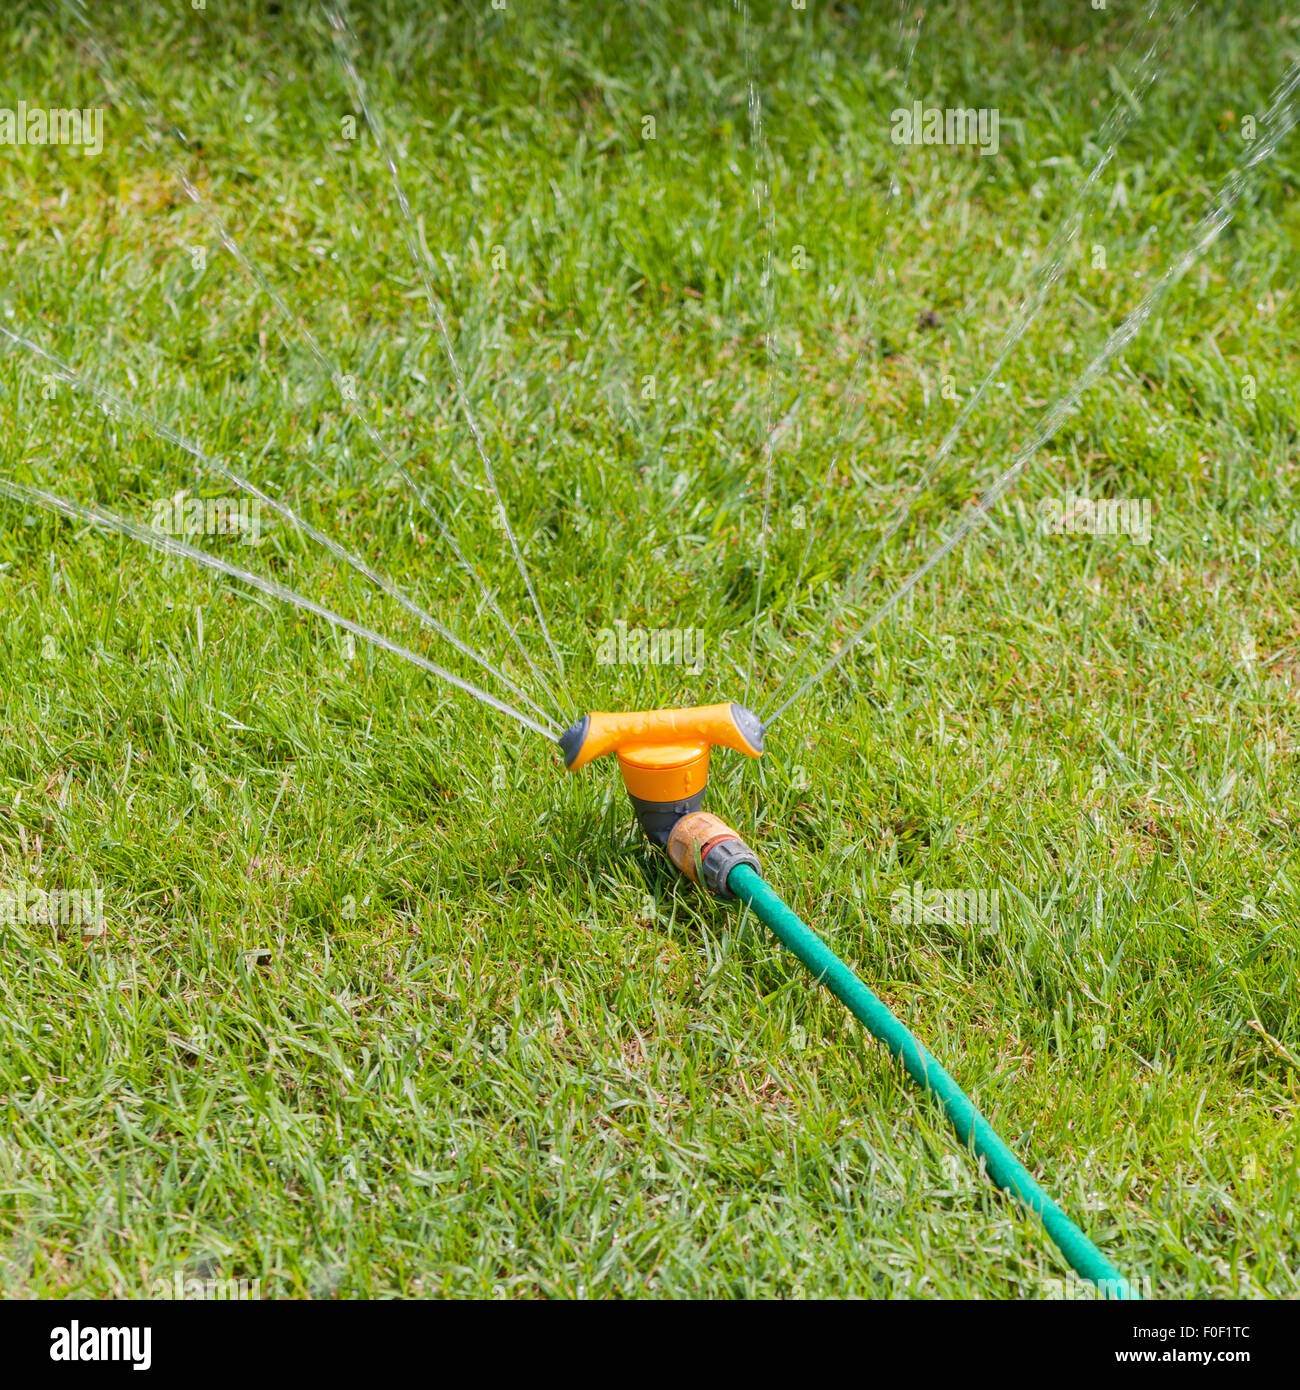 A sprinkler watering a garden lawn in the Uk - Stock Image